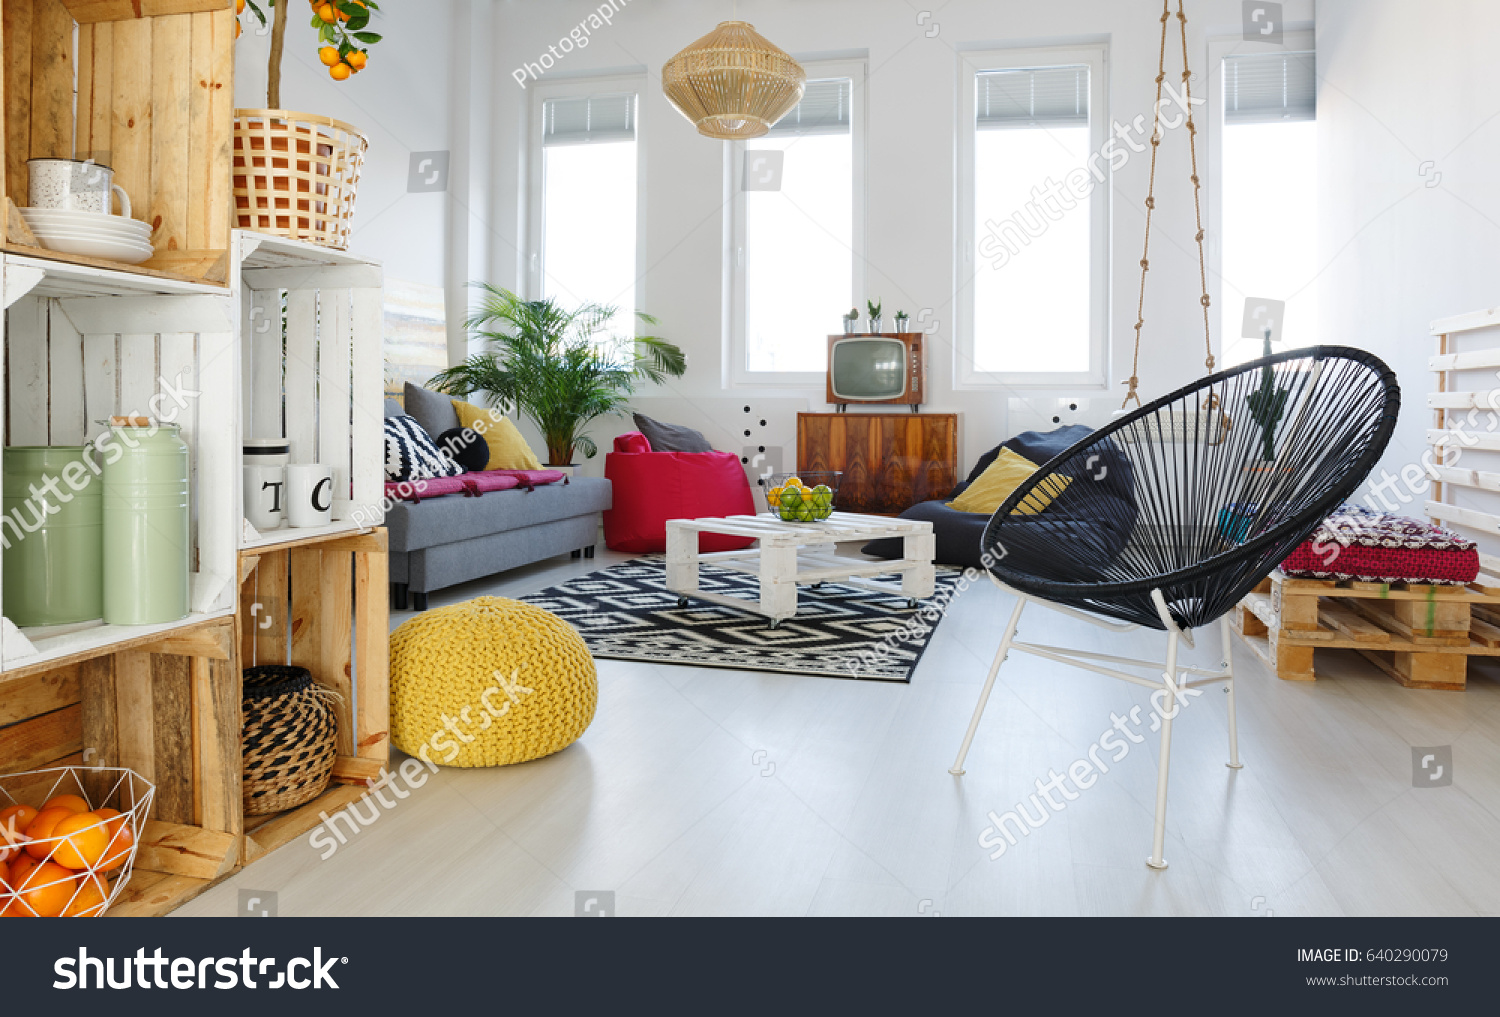 pouf in living room tv unit designs for round chair yellow stock photo edit now 640290079 with sofa pallet furniture